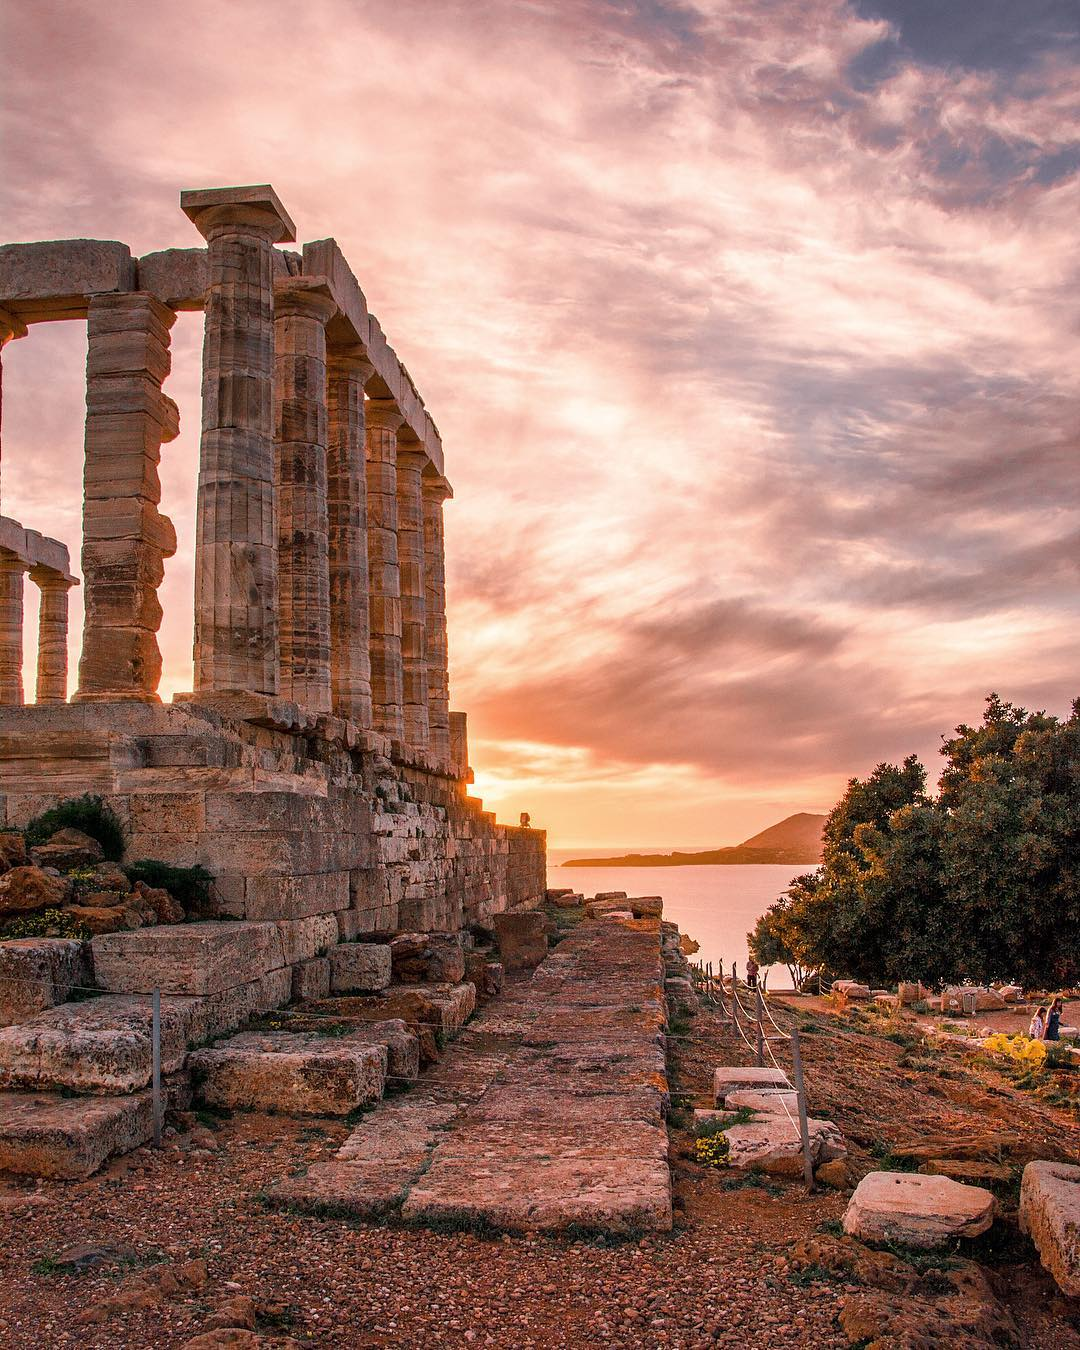 Temple of Poseidon Greece Summer